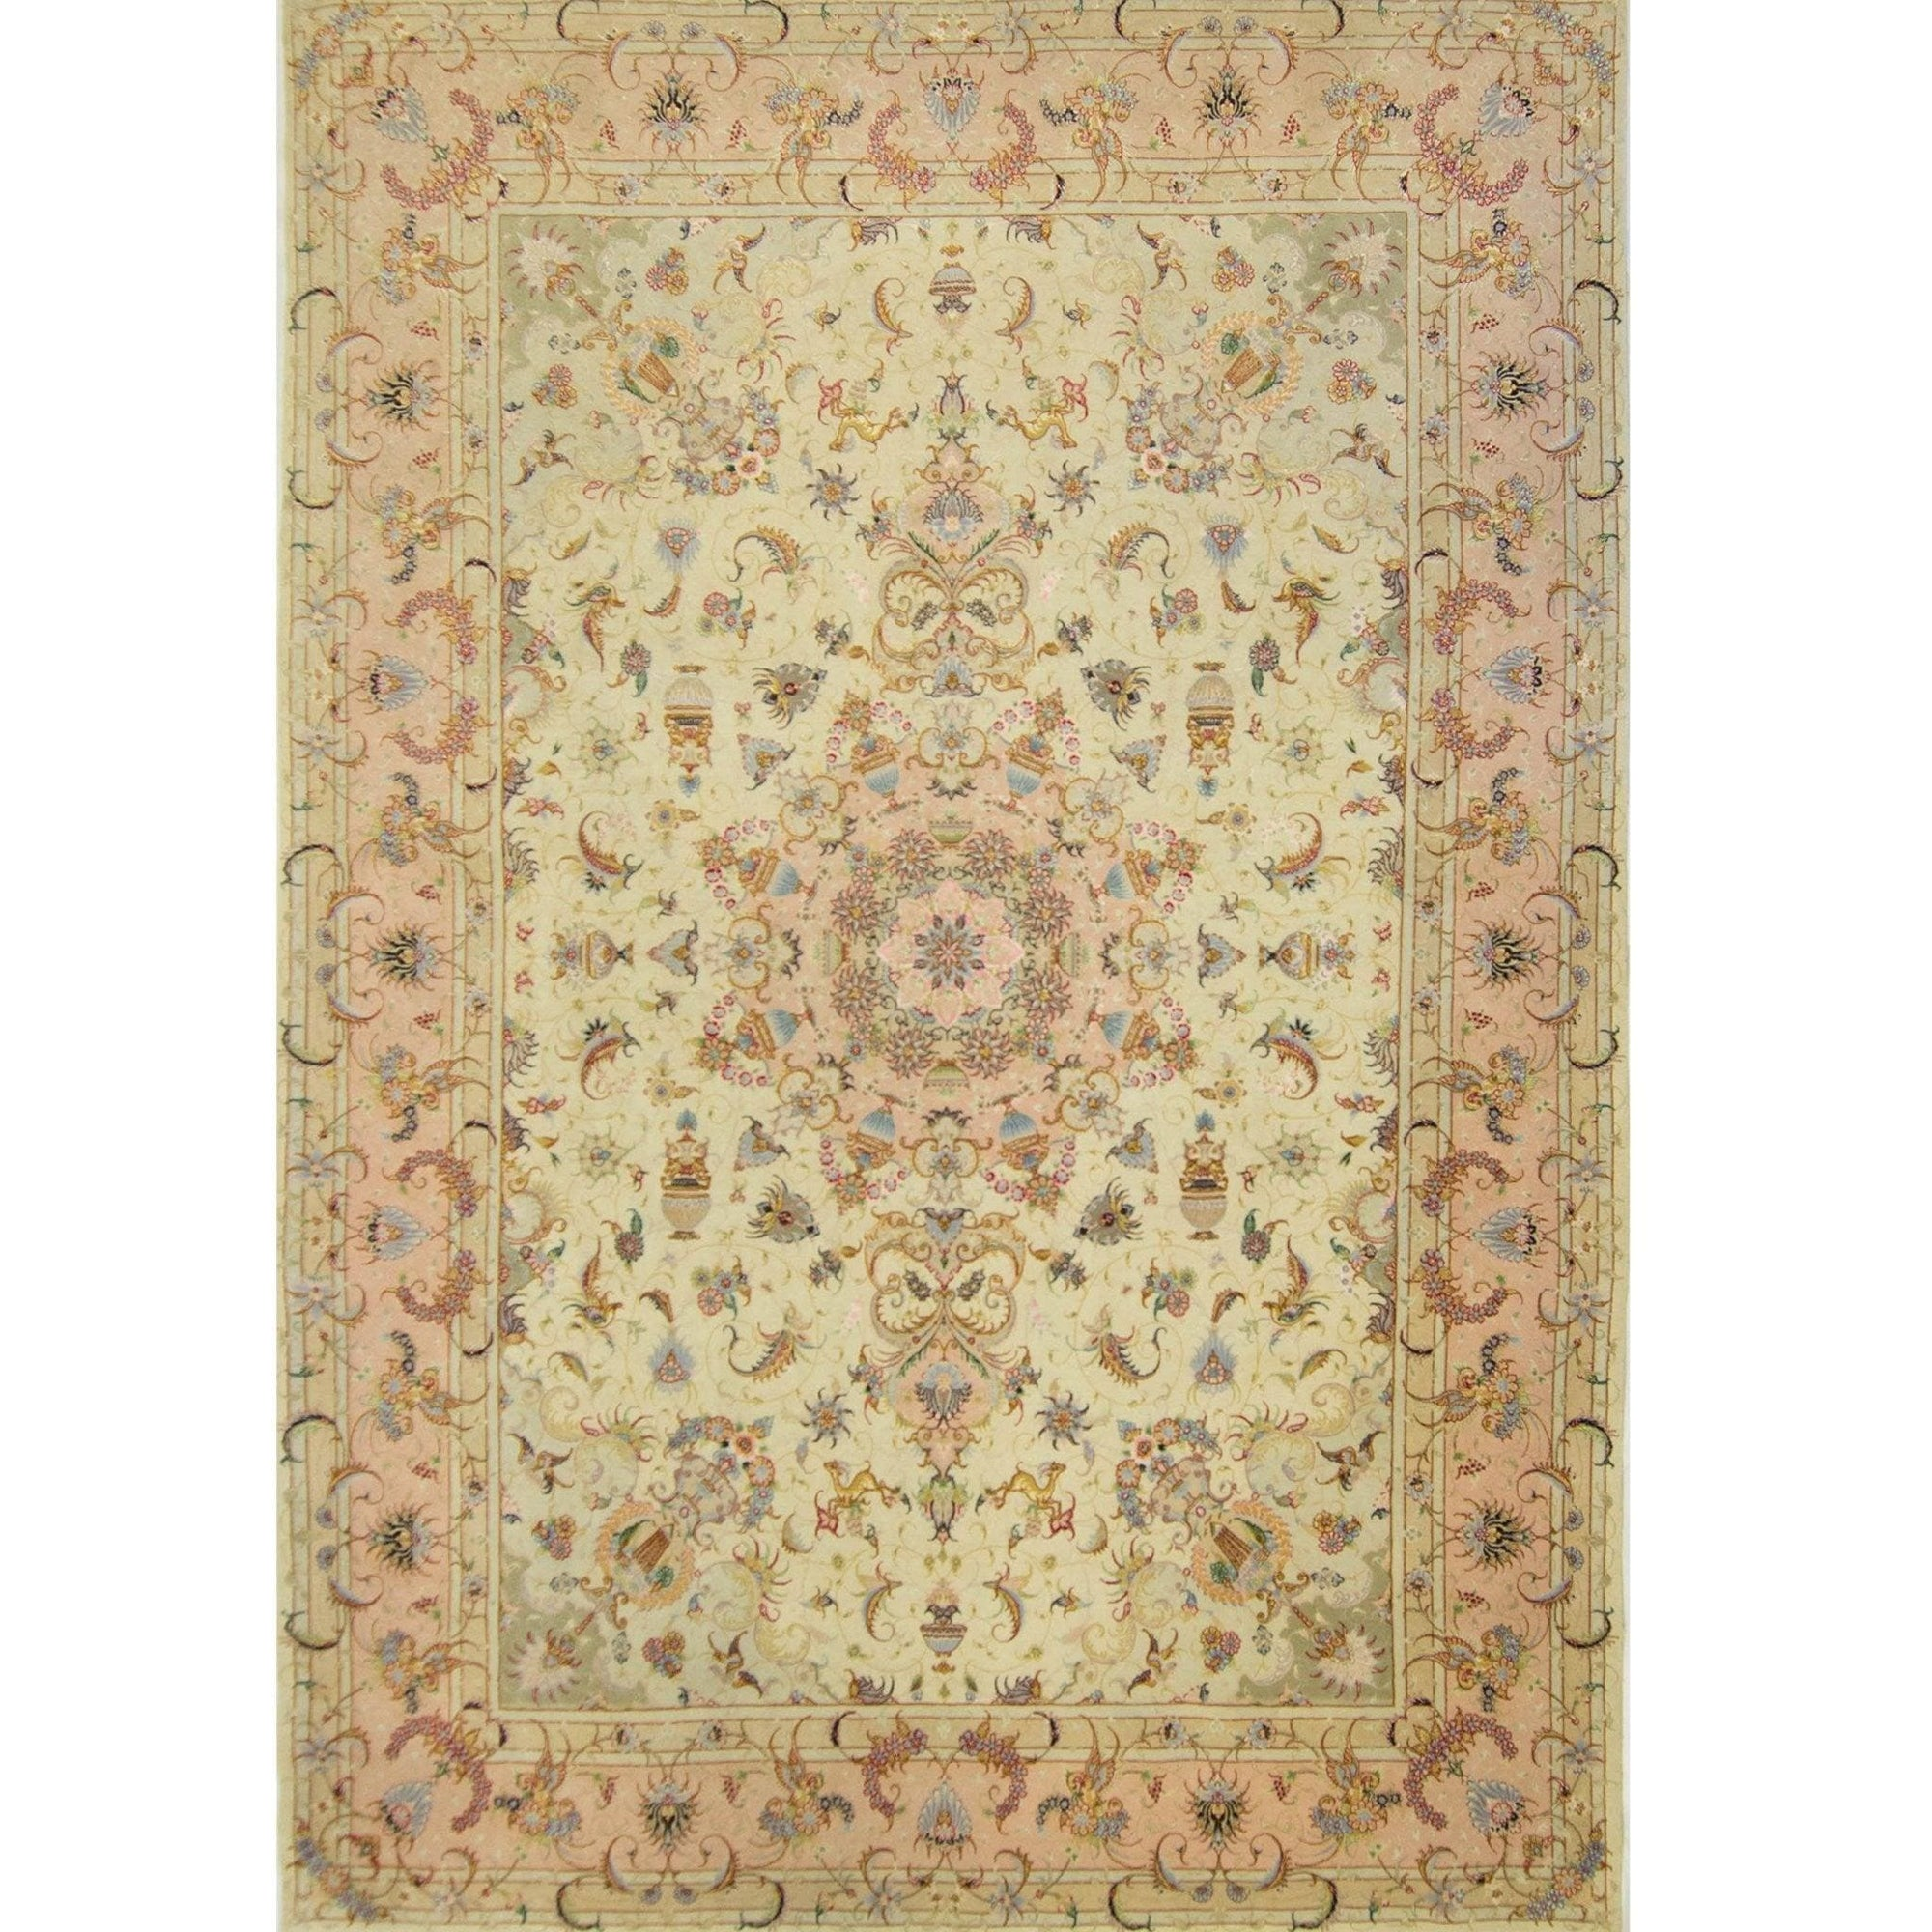 Super Fine Hand-knotted Wool and Silk Persian Rug 251 cm x 356 cm Persian-Rug | House-of-Haghi | NewMarket | Auckland | NZ | Handmade Persian Rugs | Hand Knotted Persian Rugs